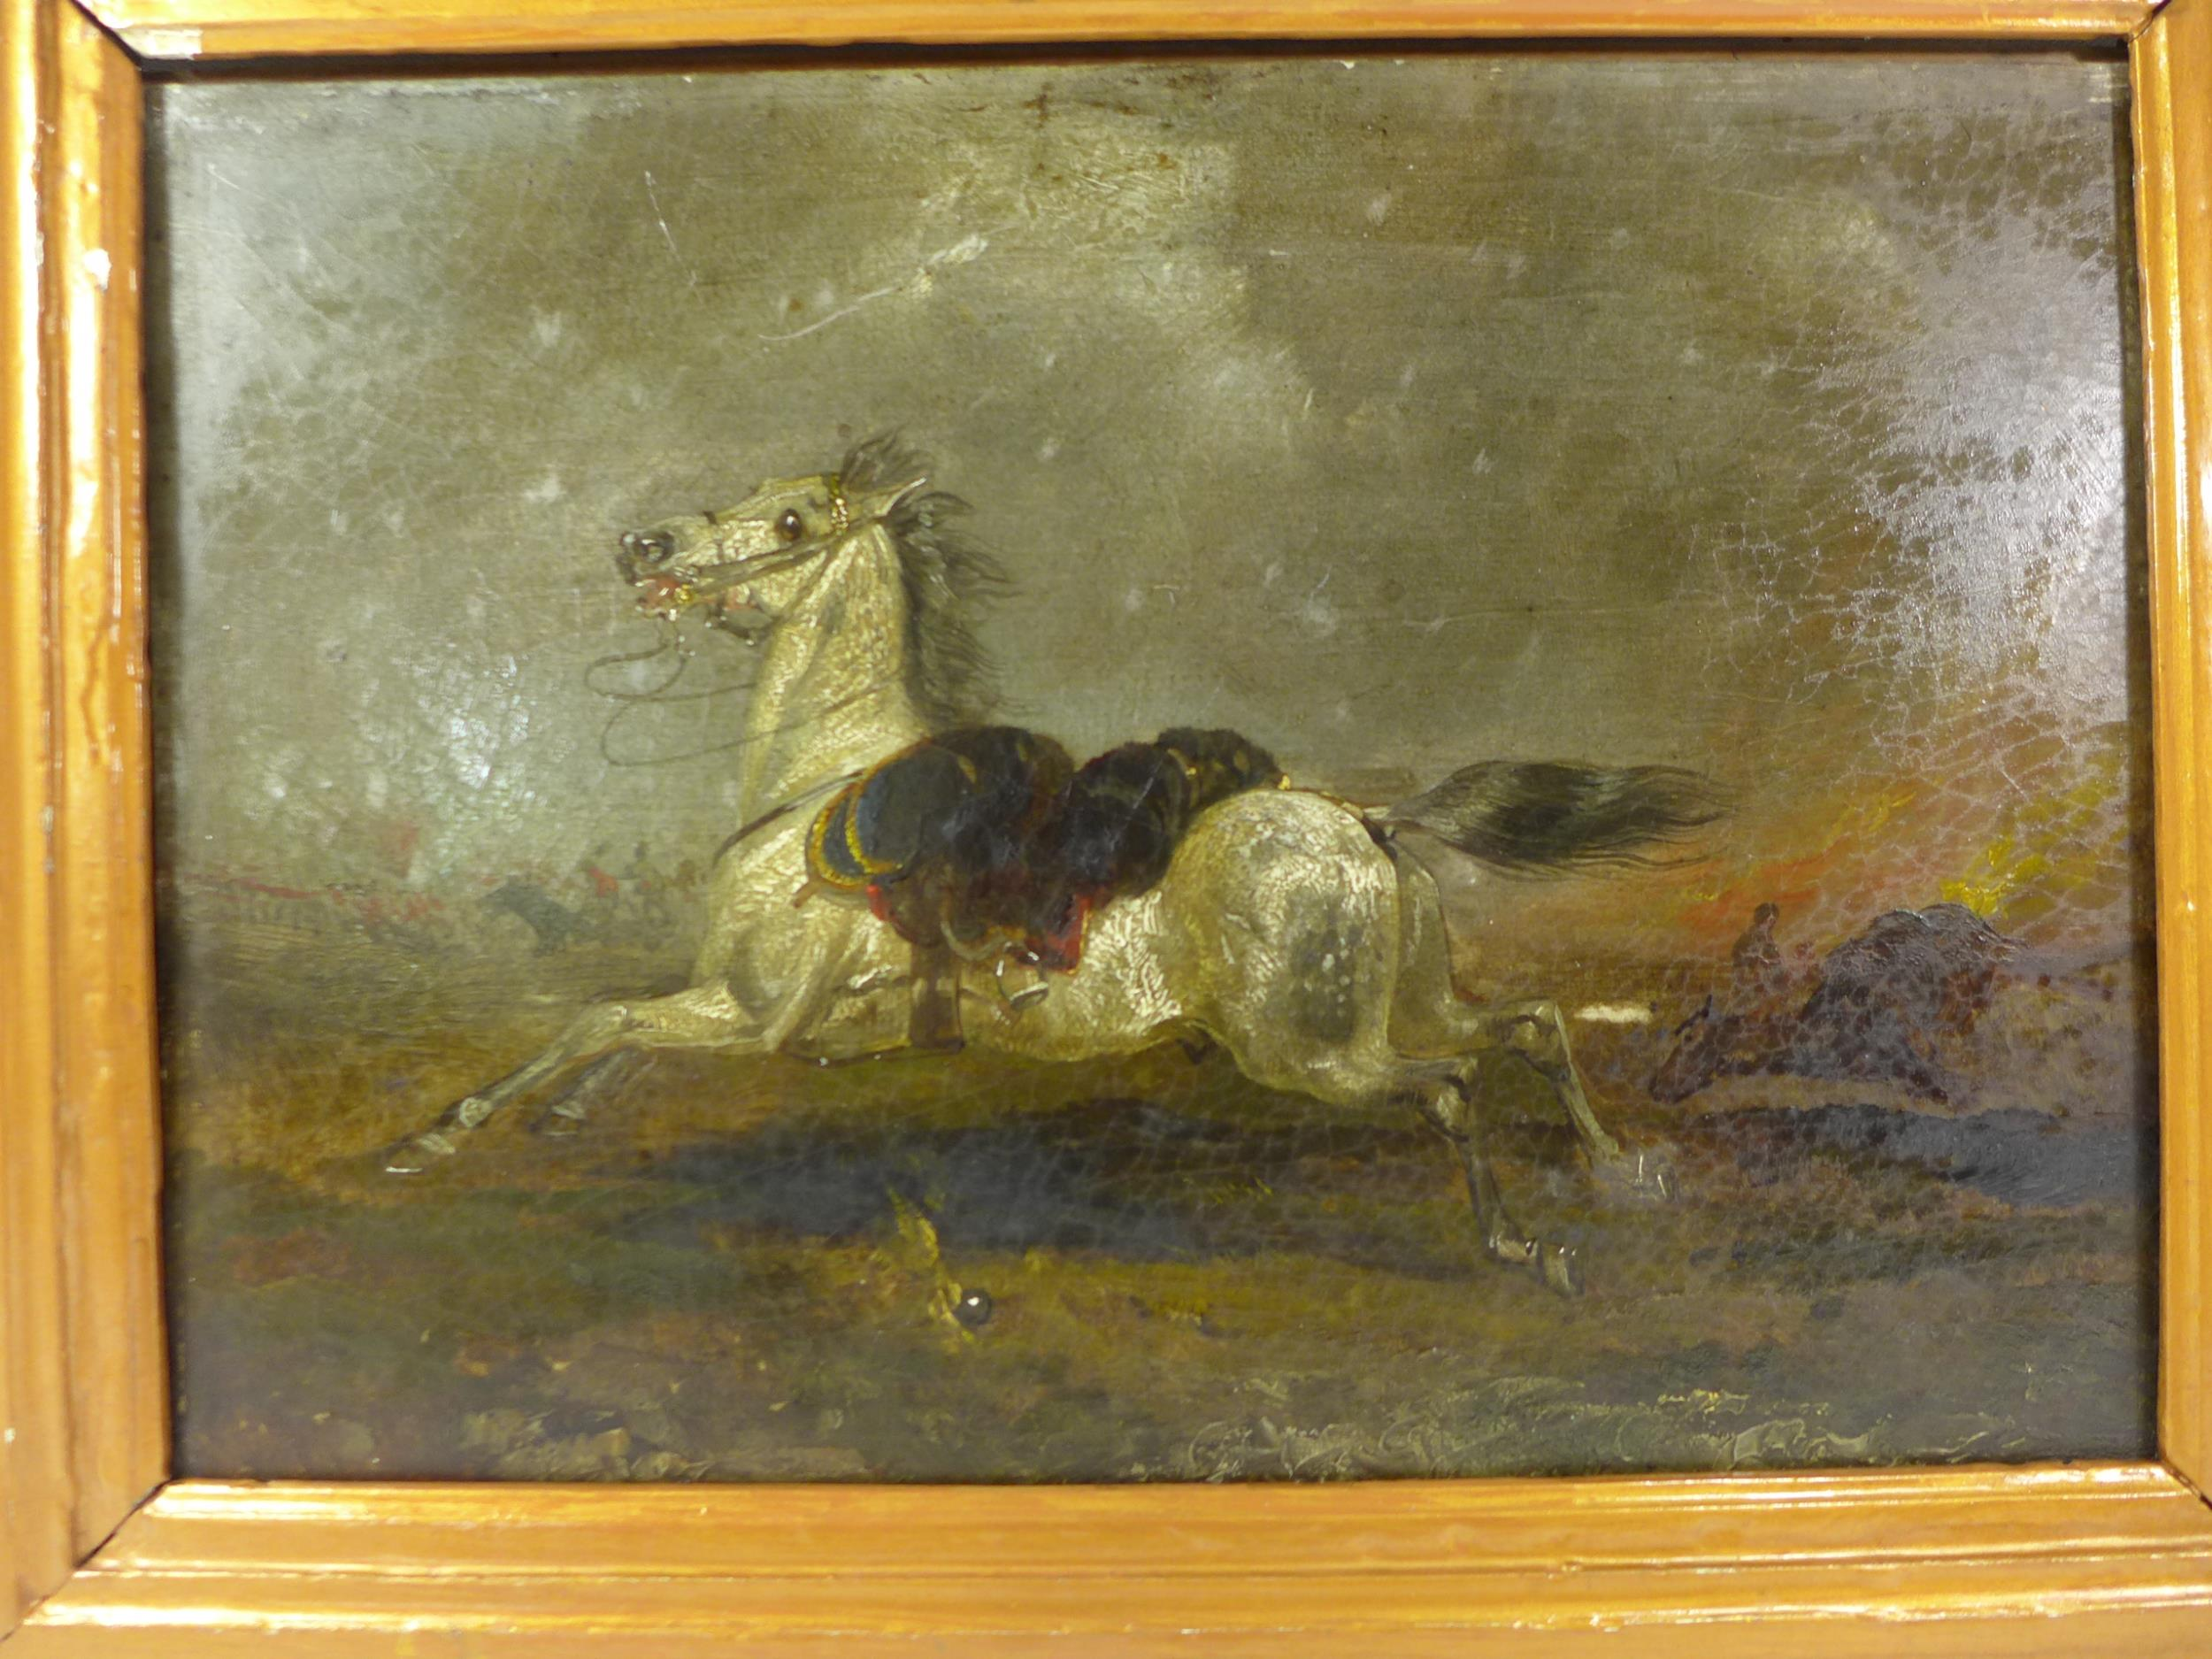 A 19TH CENTURY OIL ON PANEL PAINTING OF A GREY RIDERLESS HORSE IN A NAPOLEONIC WAR BATTLE SCENE, - Image 2 of 3